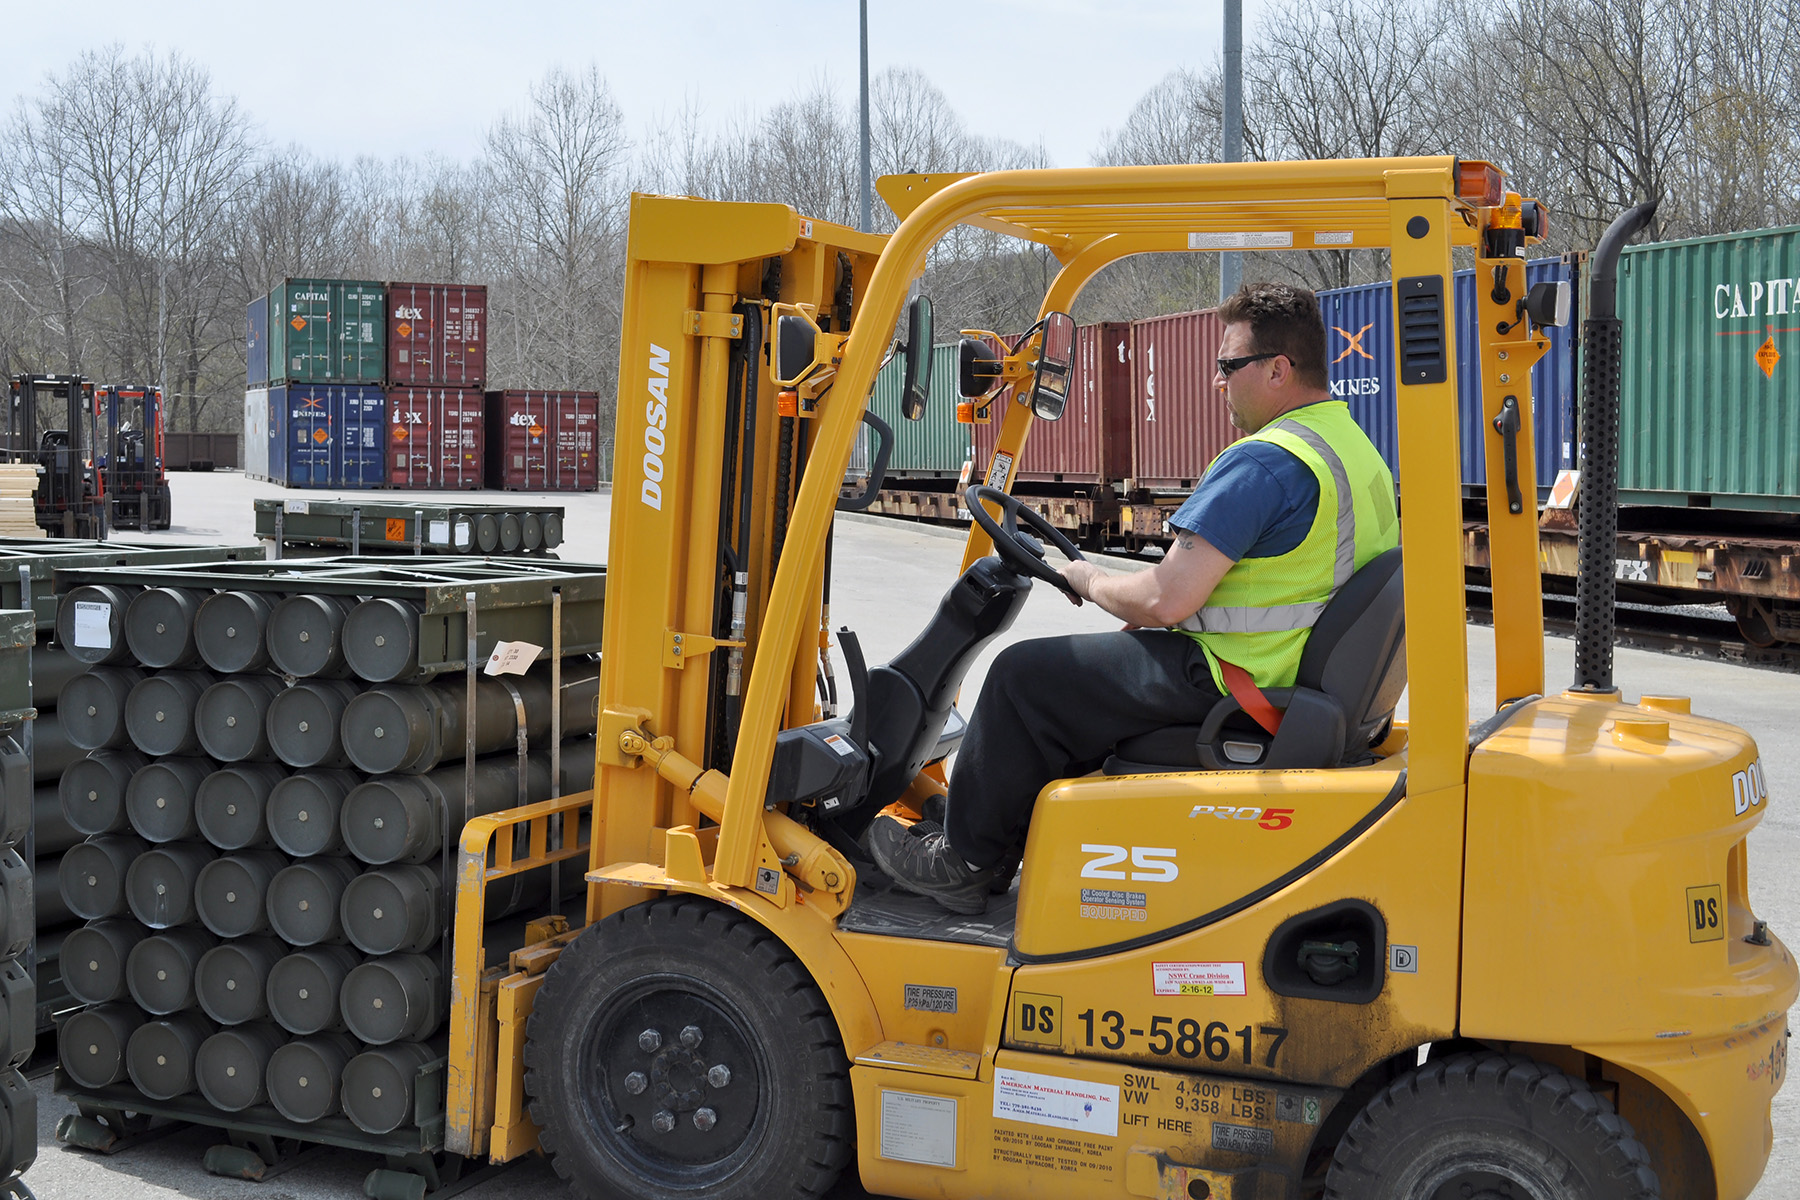 A forklift operator transports a pallet of ammunition at Crane Army Ammunition Activity (CAAA), Indiana, as part of the U.S. Army's supply chain. Photo via CAAA Public Affairs/U.S. Army